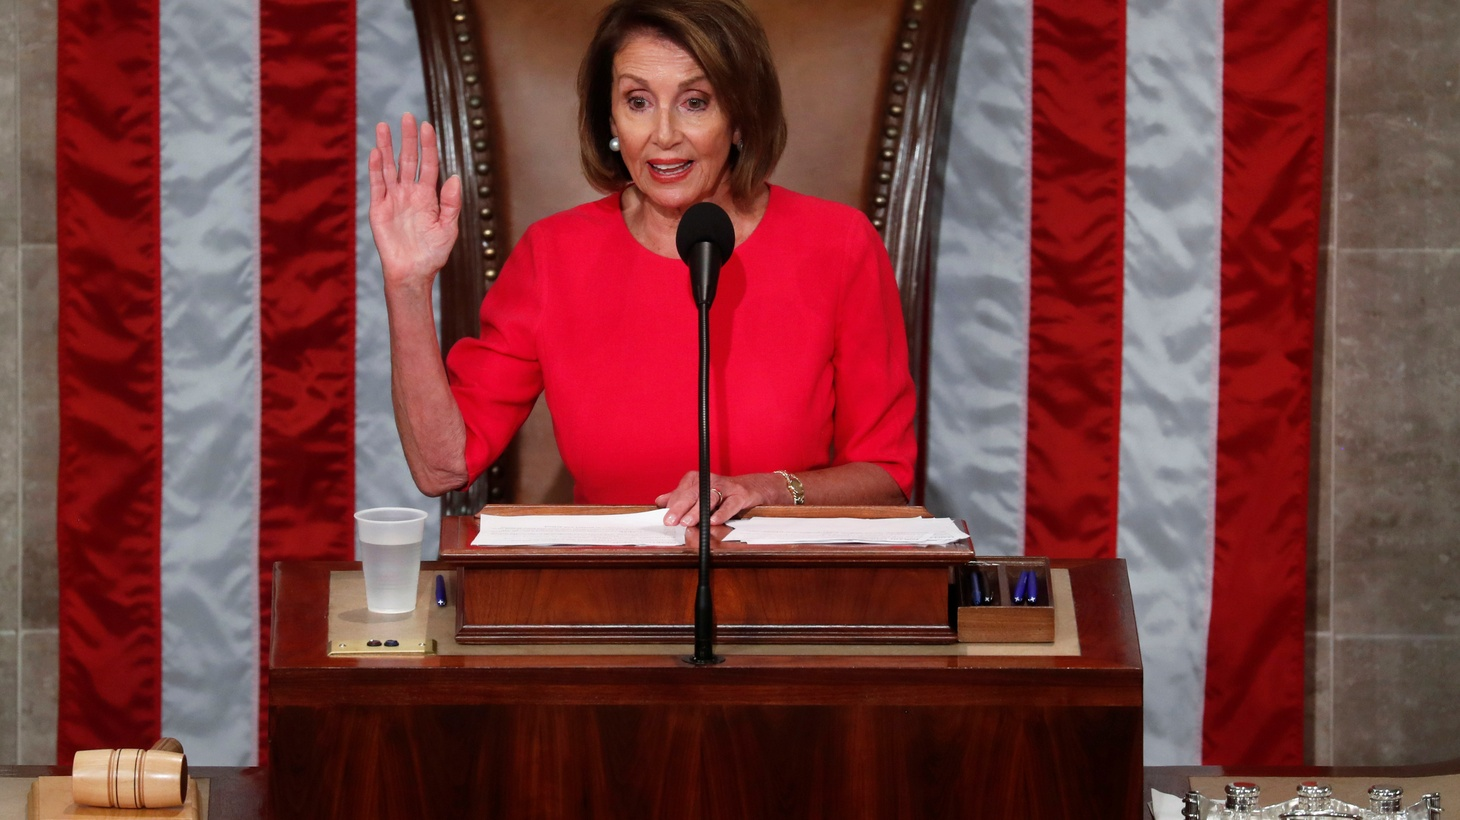 House Speaker-designate Nancy Pelosi (D-CA) is sworn in as the U.S. House of Representatives meets for the start of the 116th Congress inside the House Chamber on Capitol Hill in Washington, U.S., January 3, 2019.